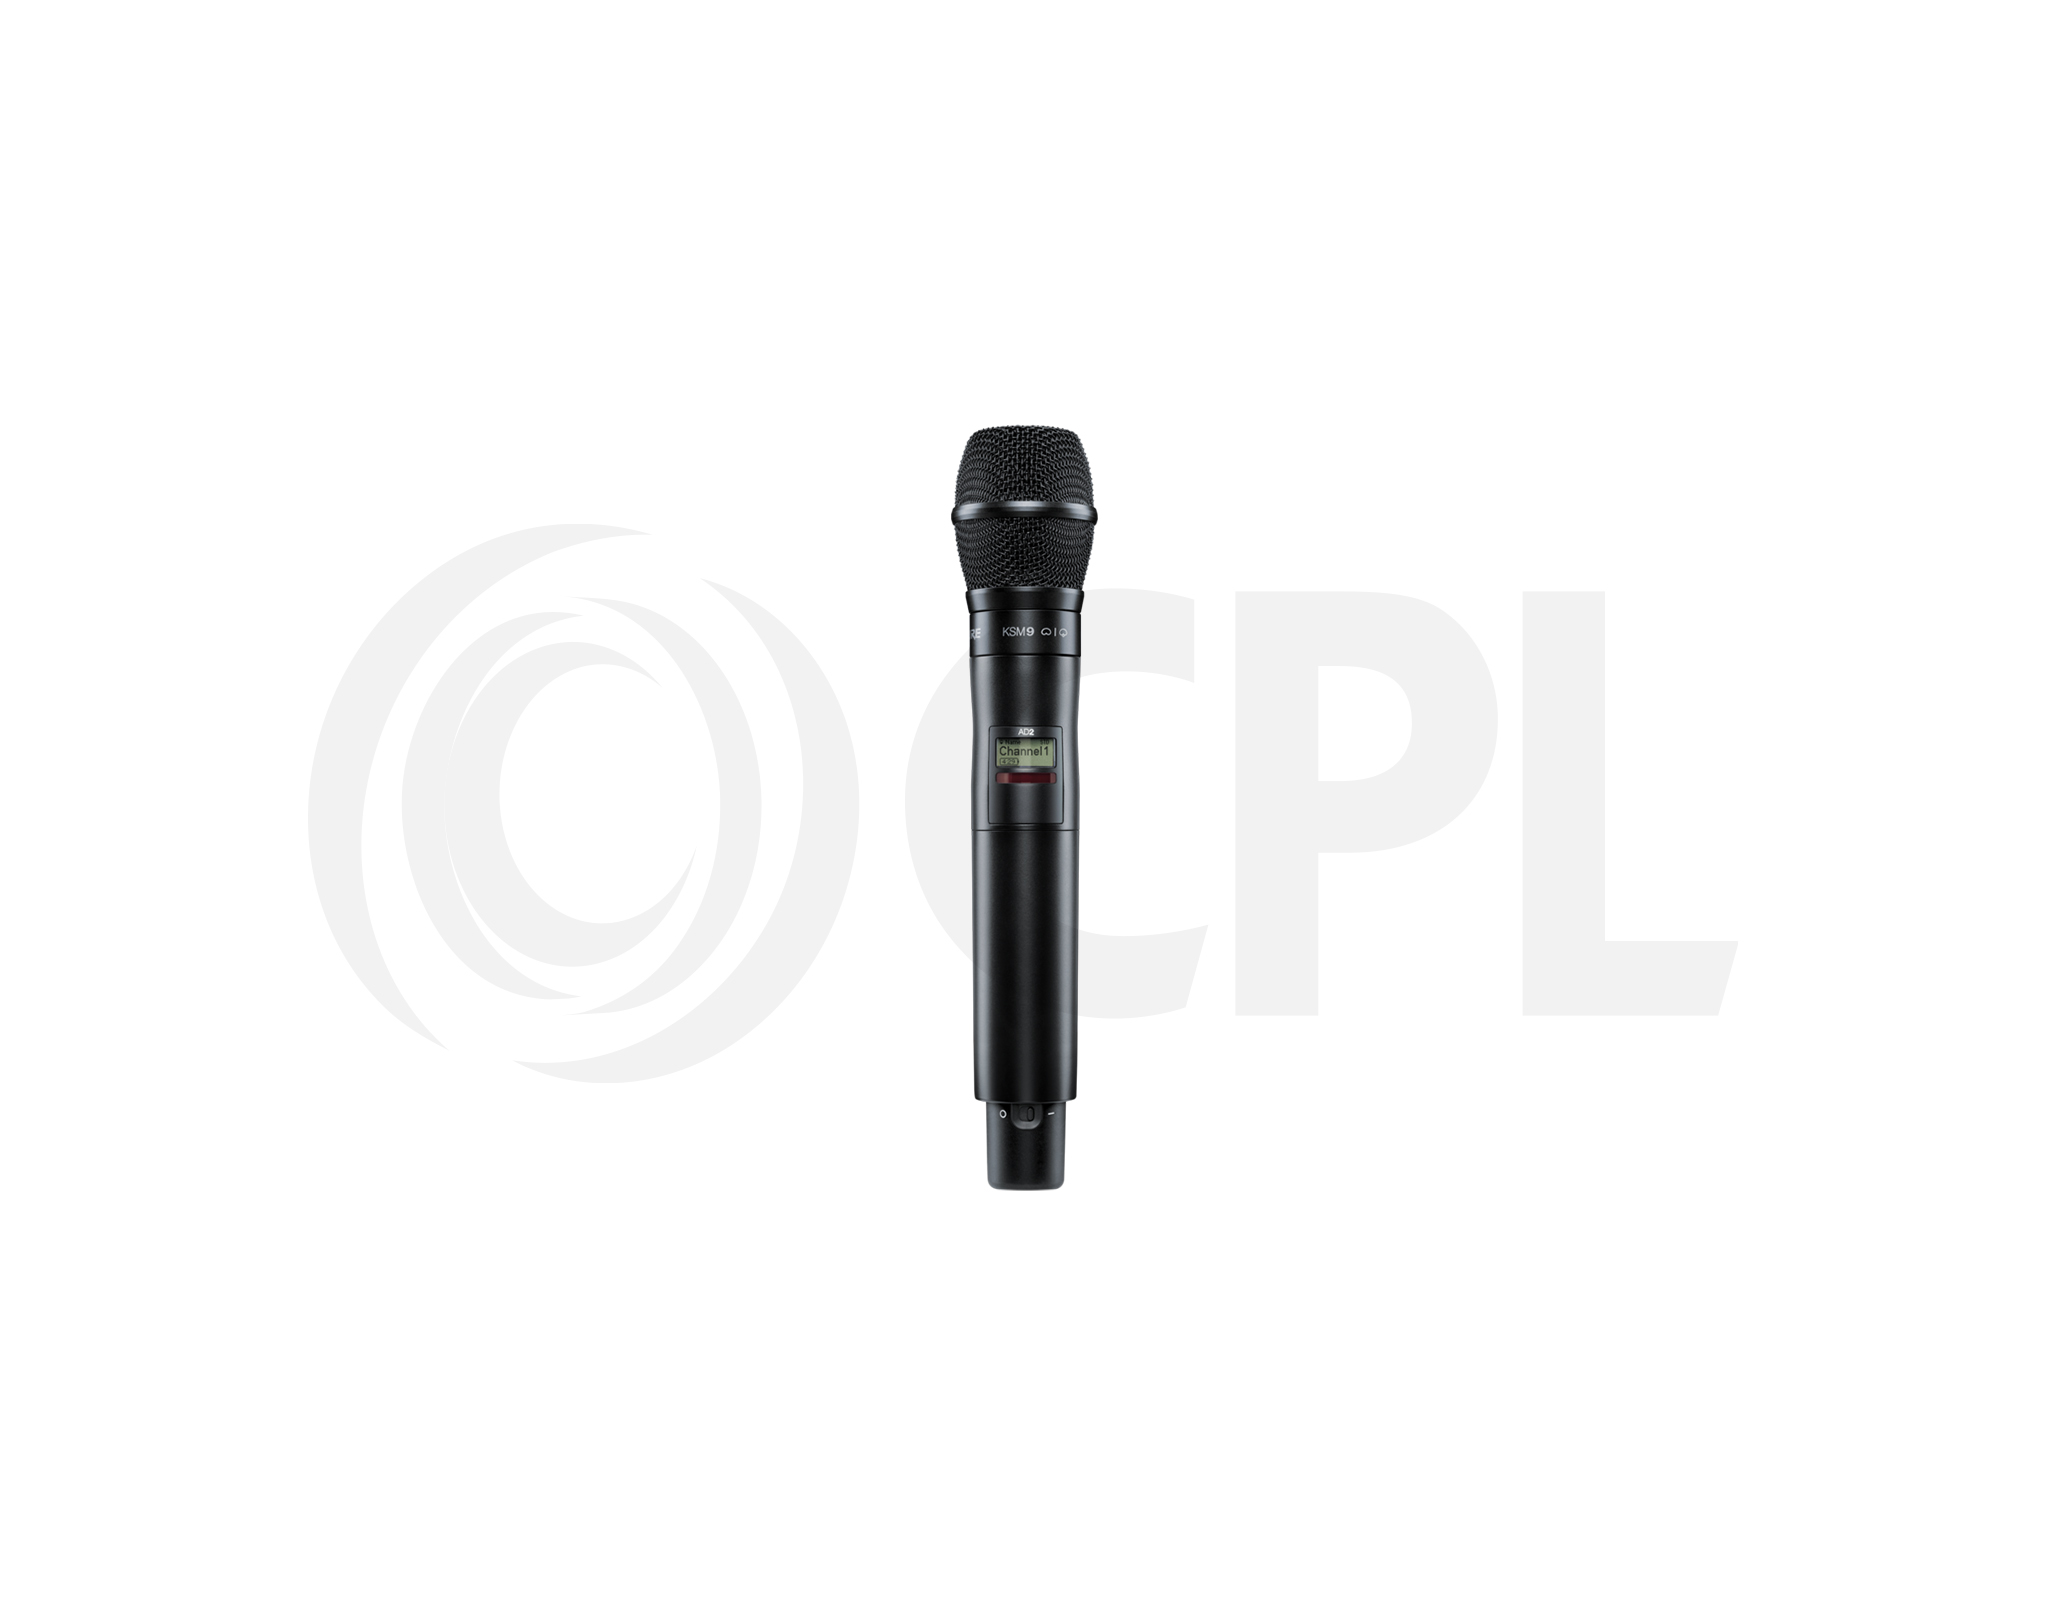 AD2/KSM9 Handheld Wireless Microphone Transmitter